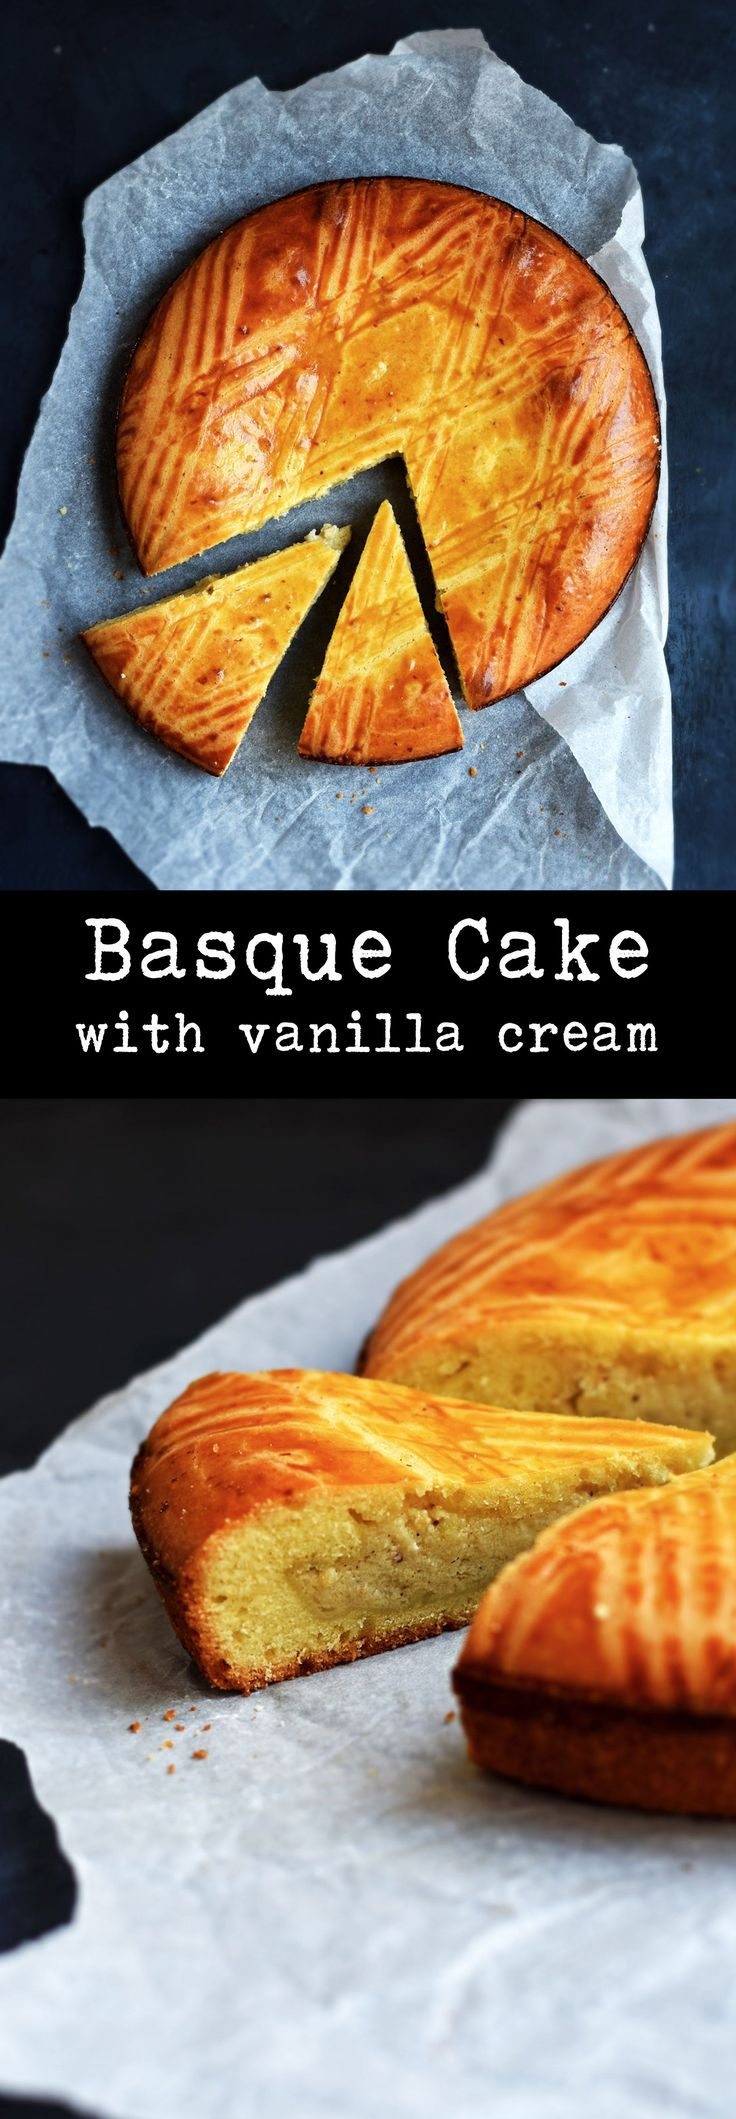 "The Basque Cake ( in French ""Gâteau Basque) is probably the most famous and traditional dessert from the Basque Region of France."